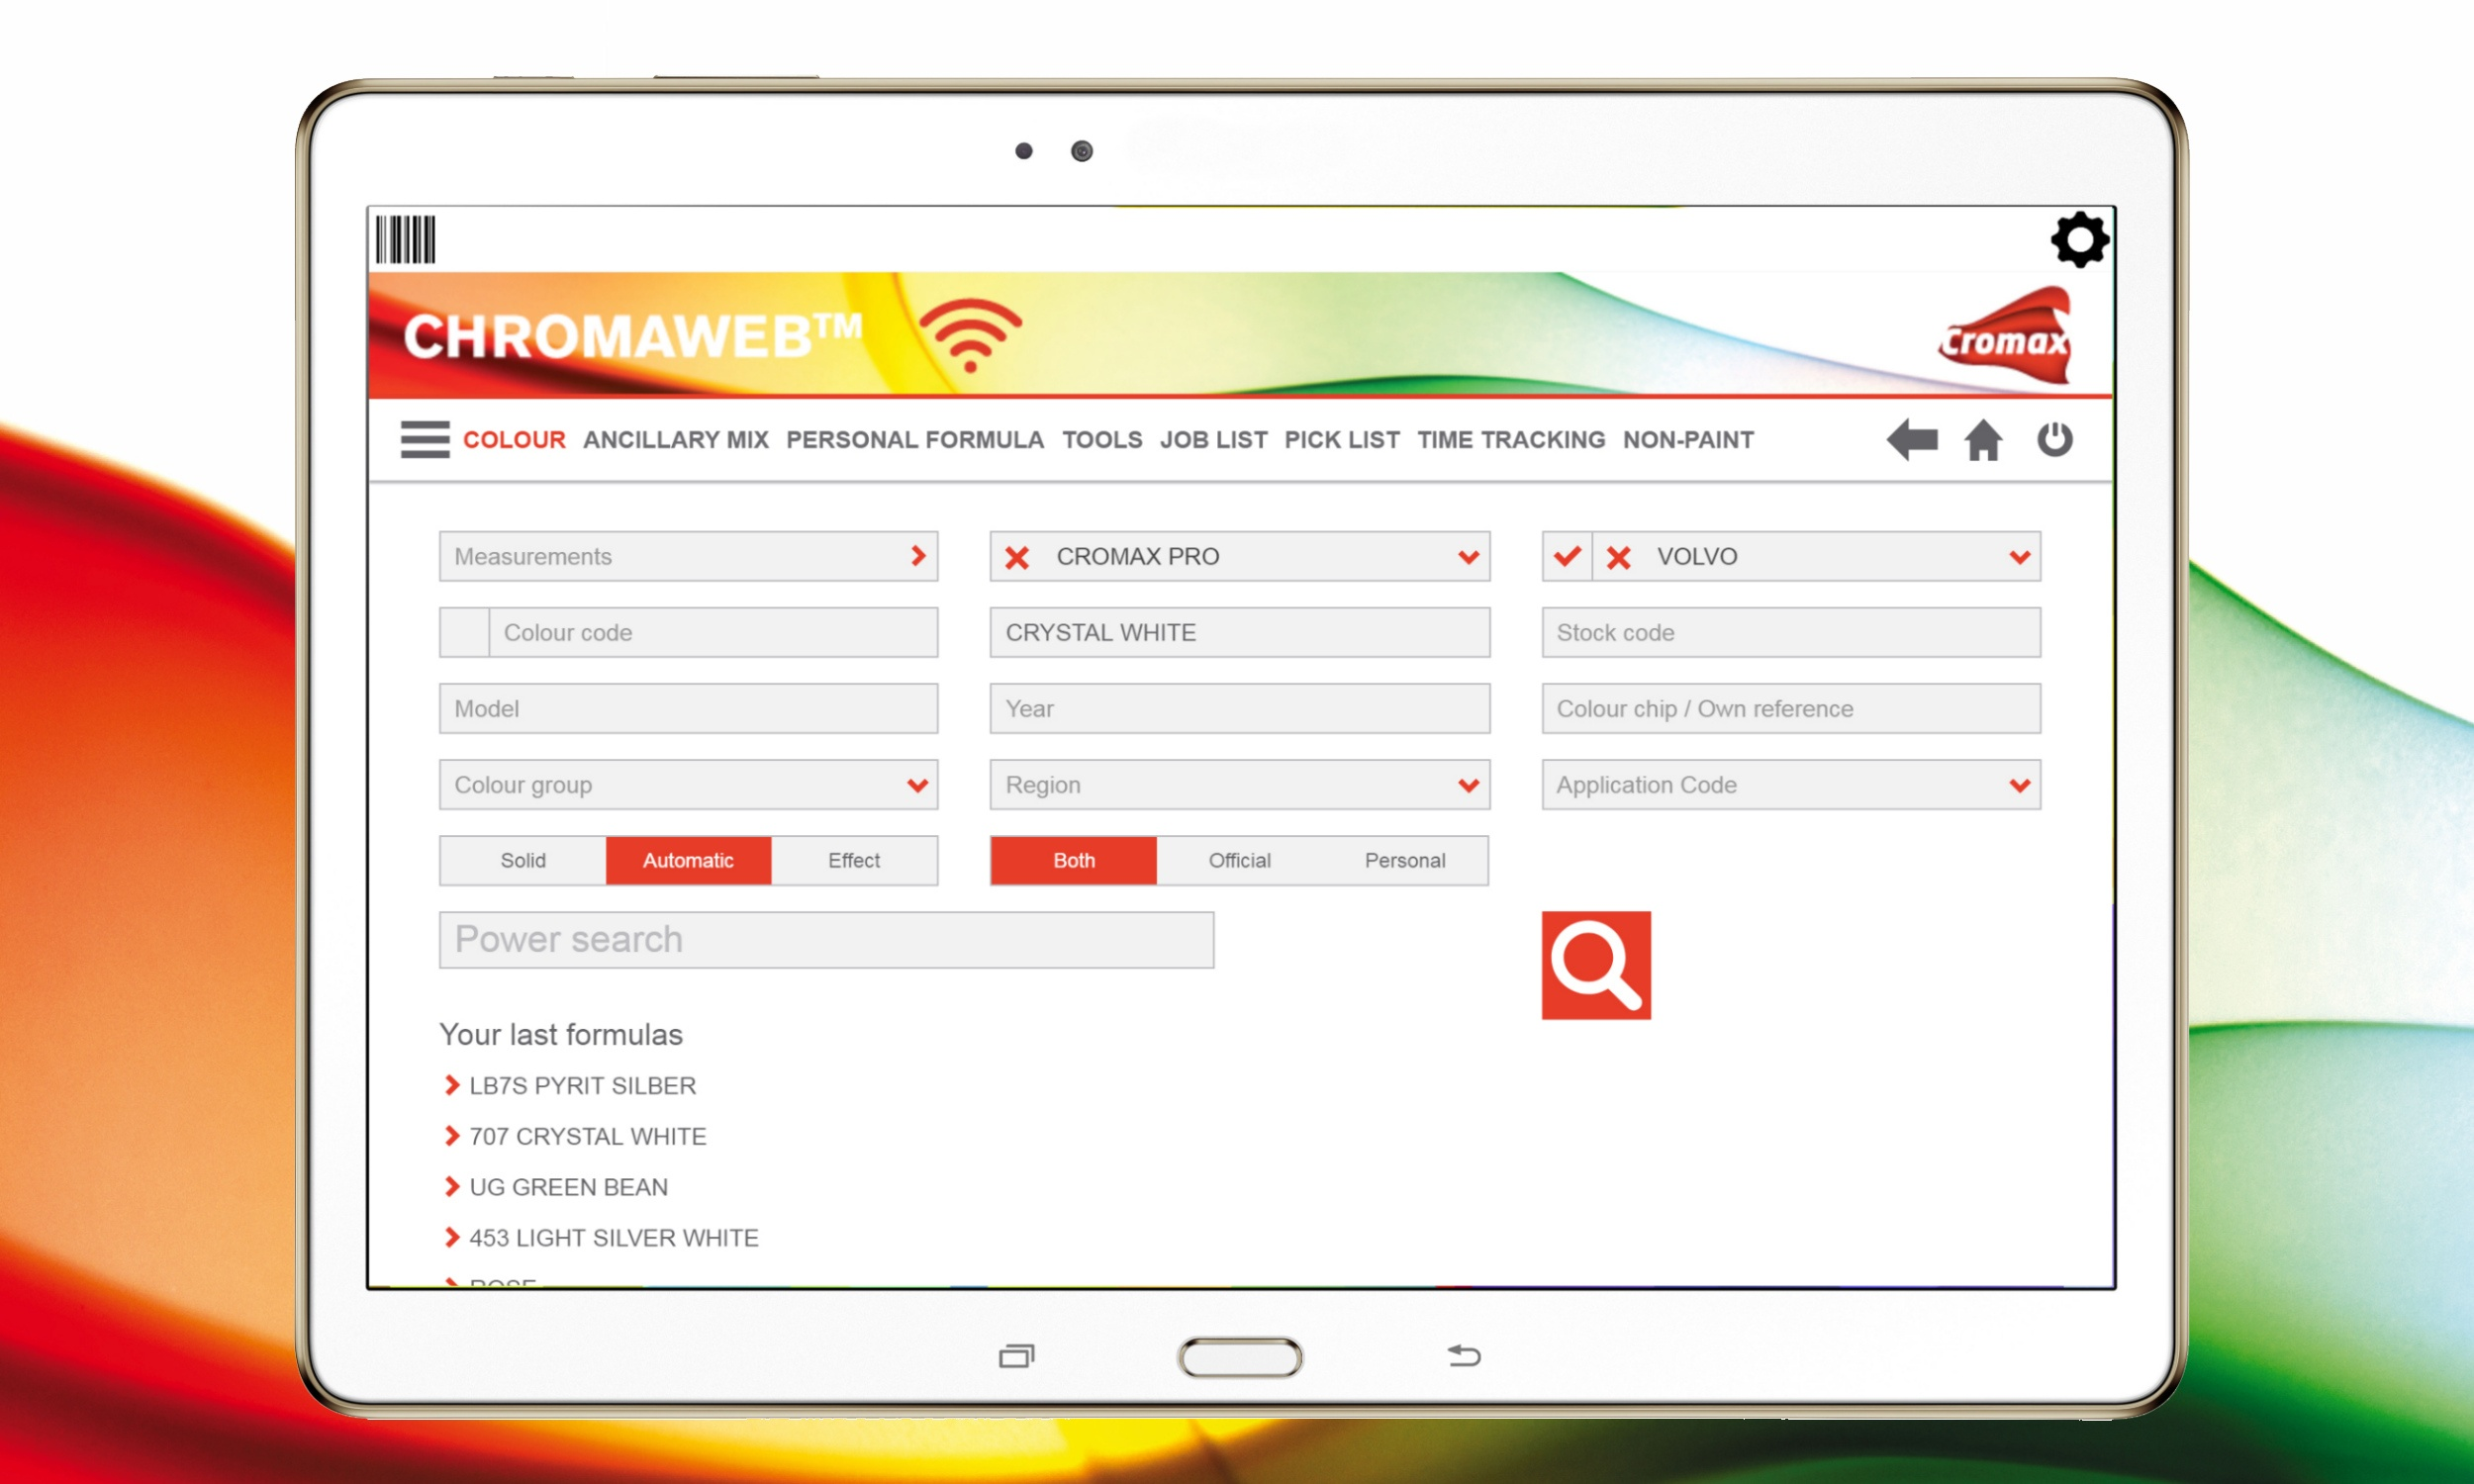 Cromax offers ChromaWeb App for Smartphones